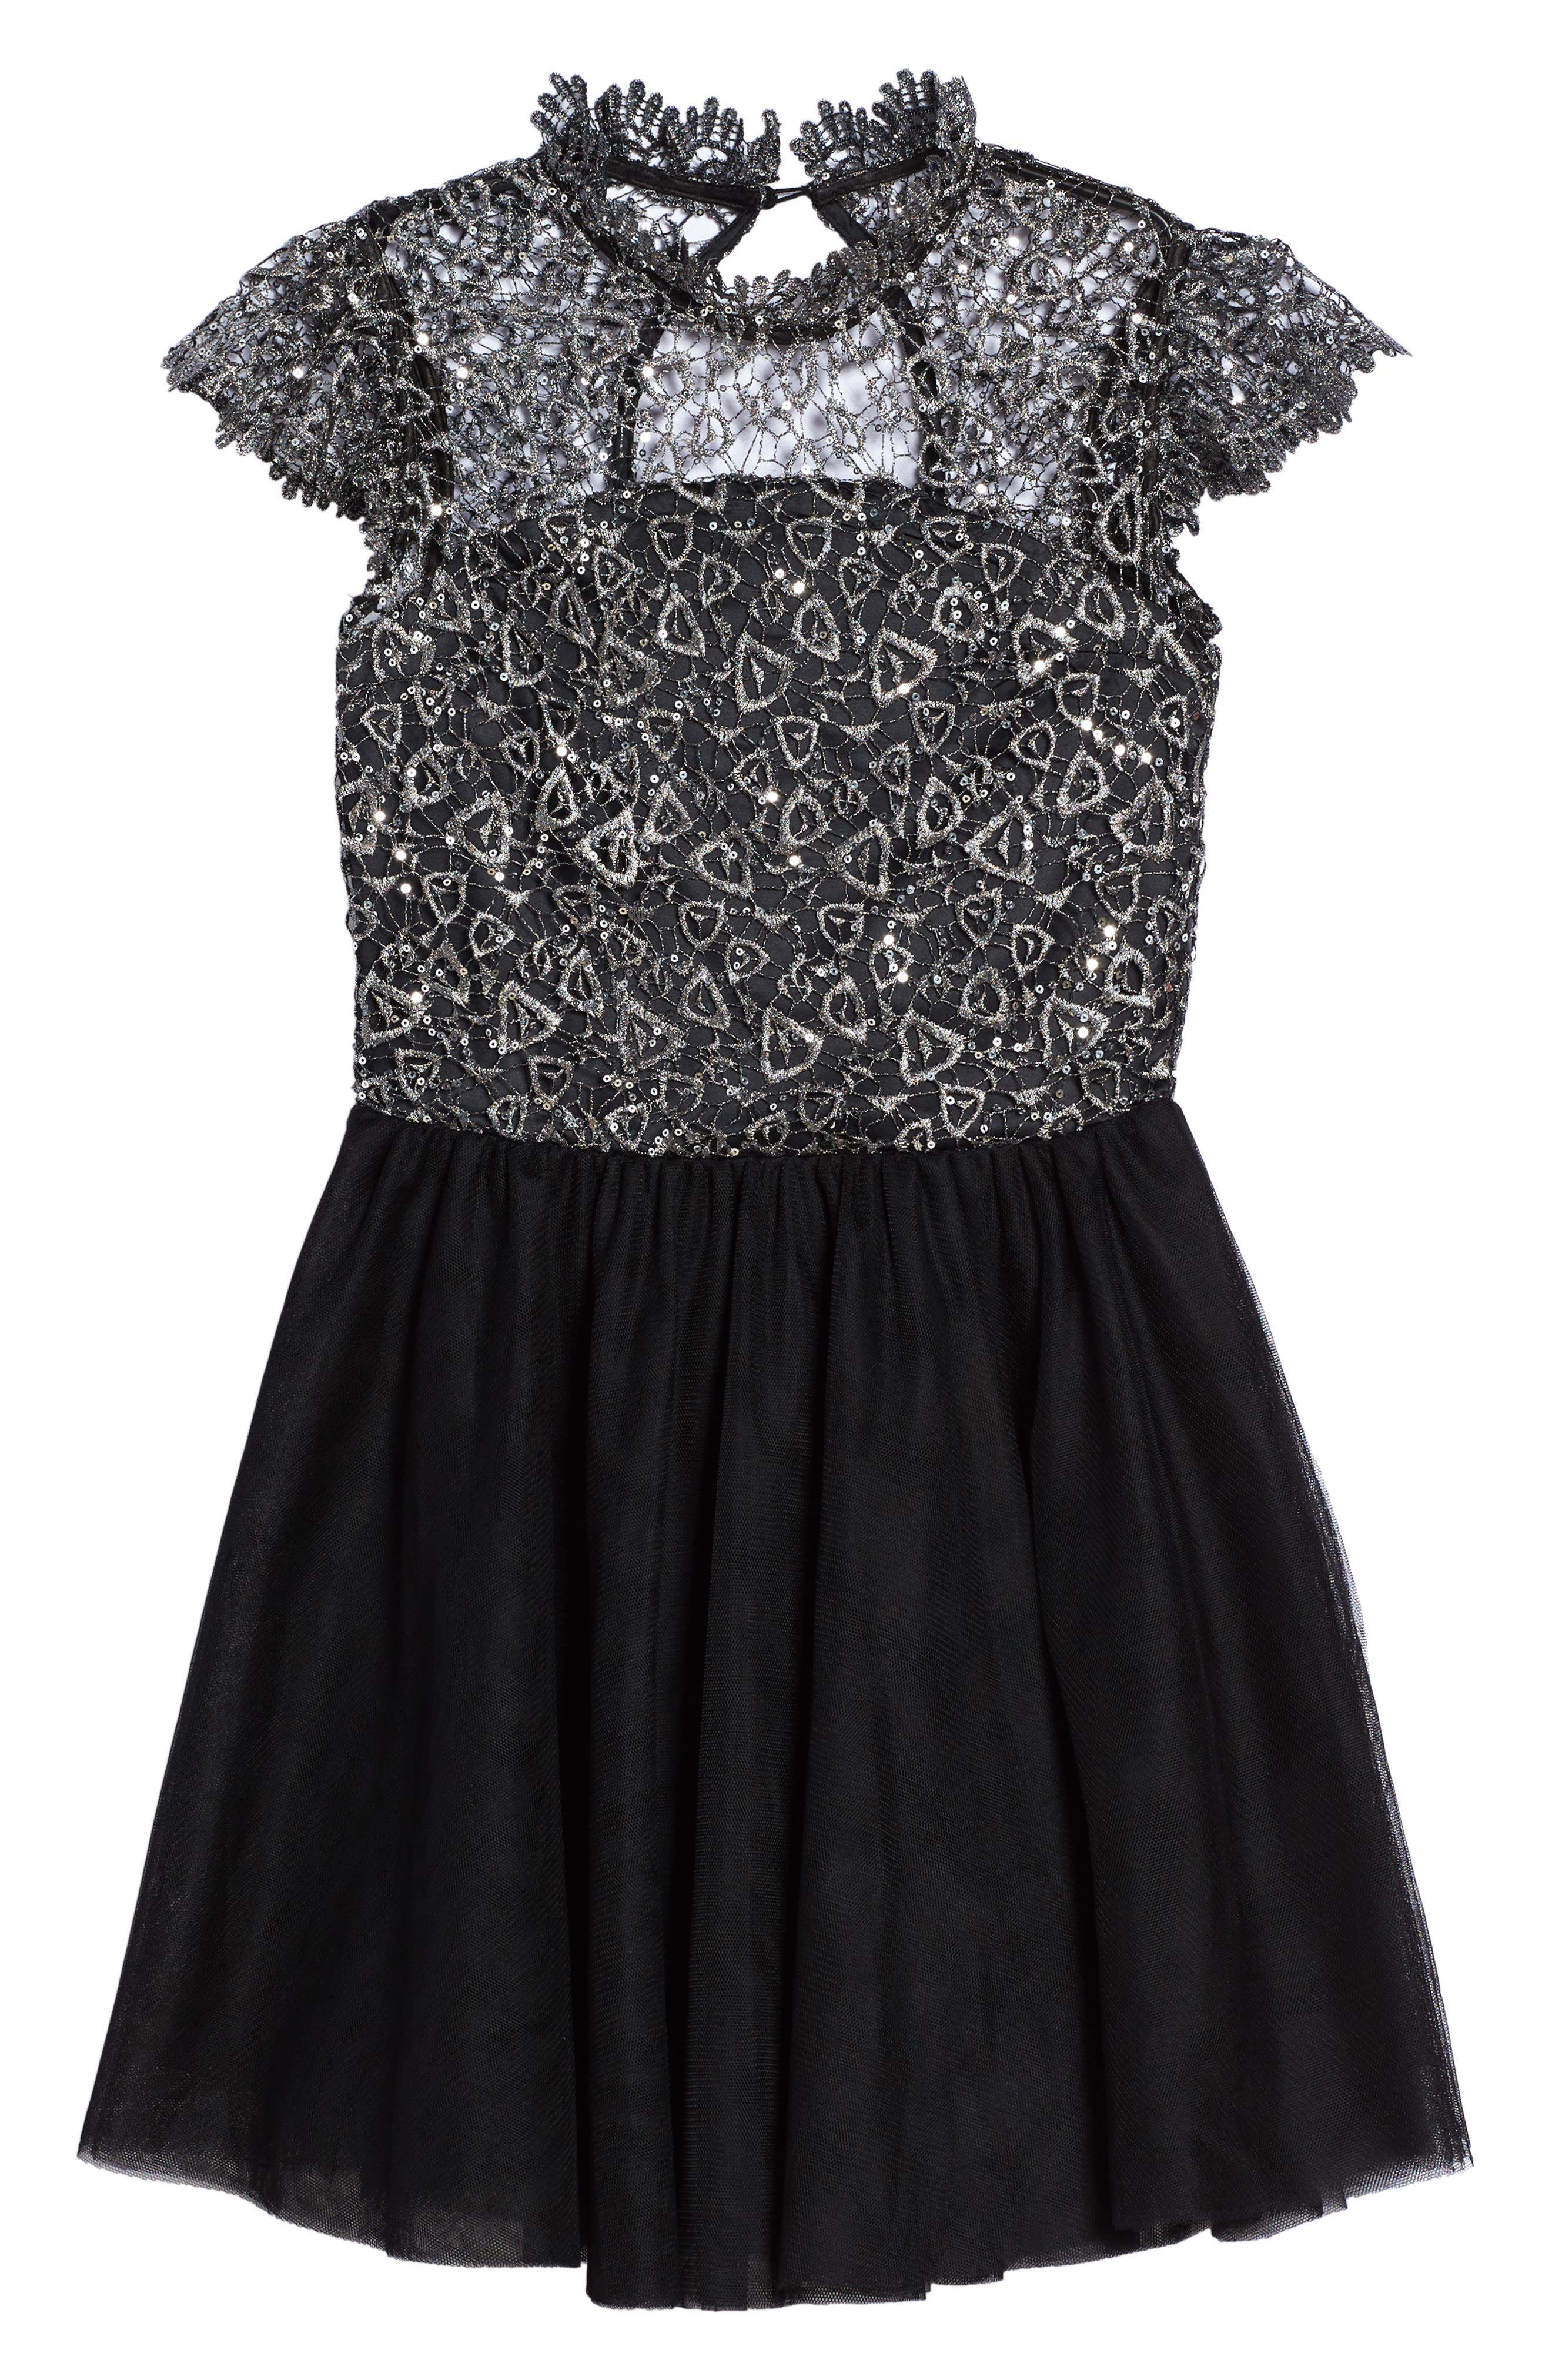 Main Image - Miss Behave Bling Rocky Dress (Big Girls)